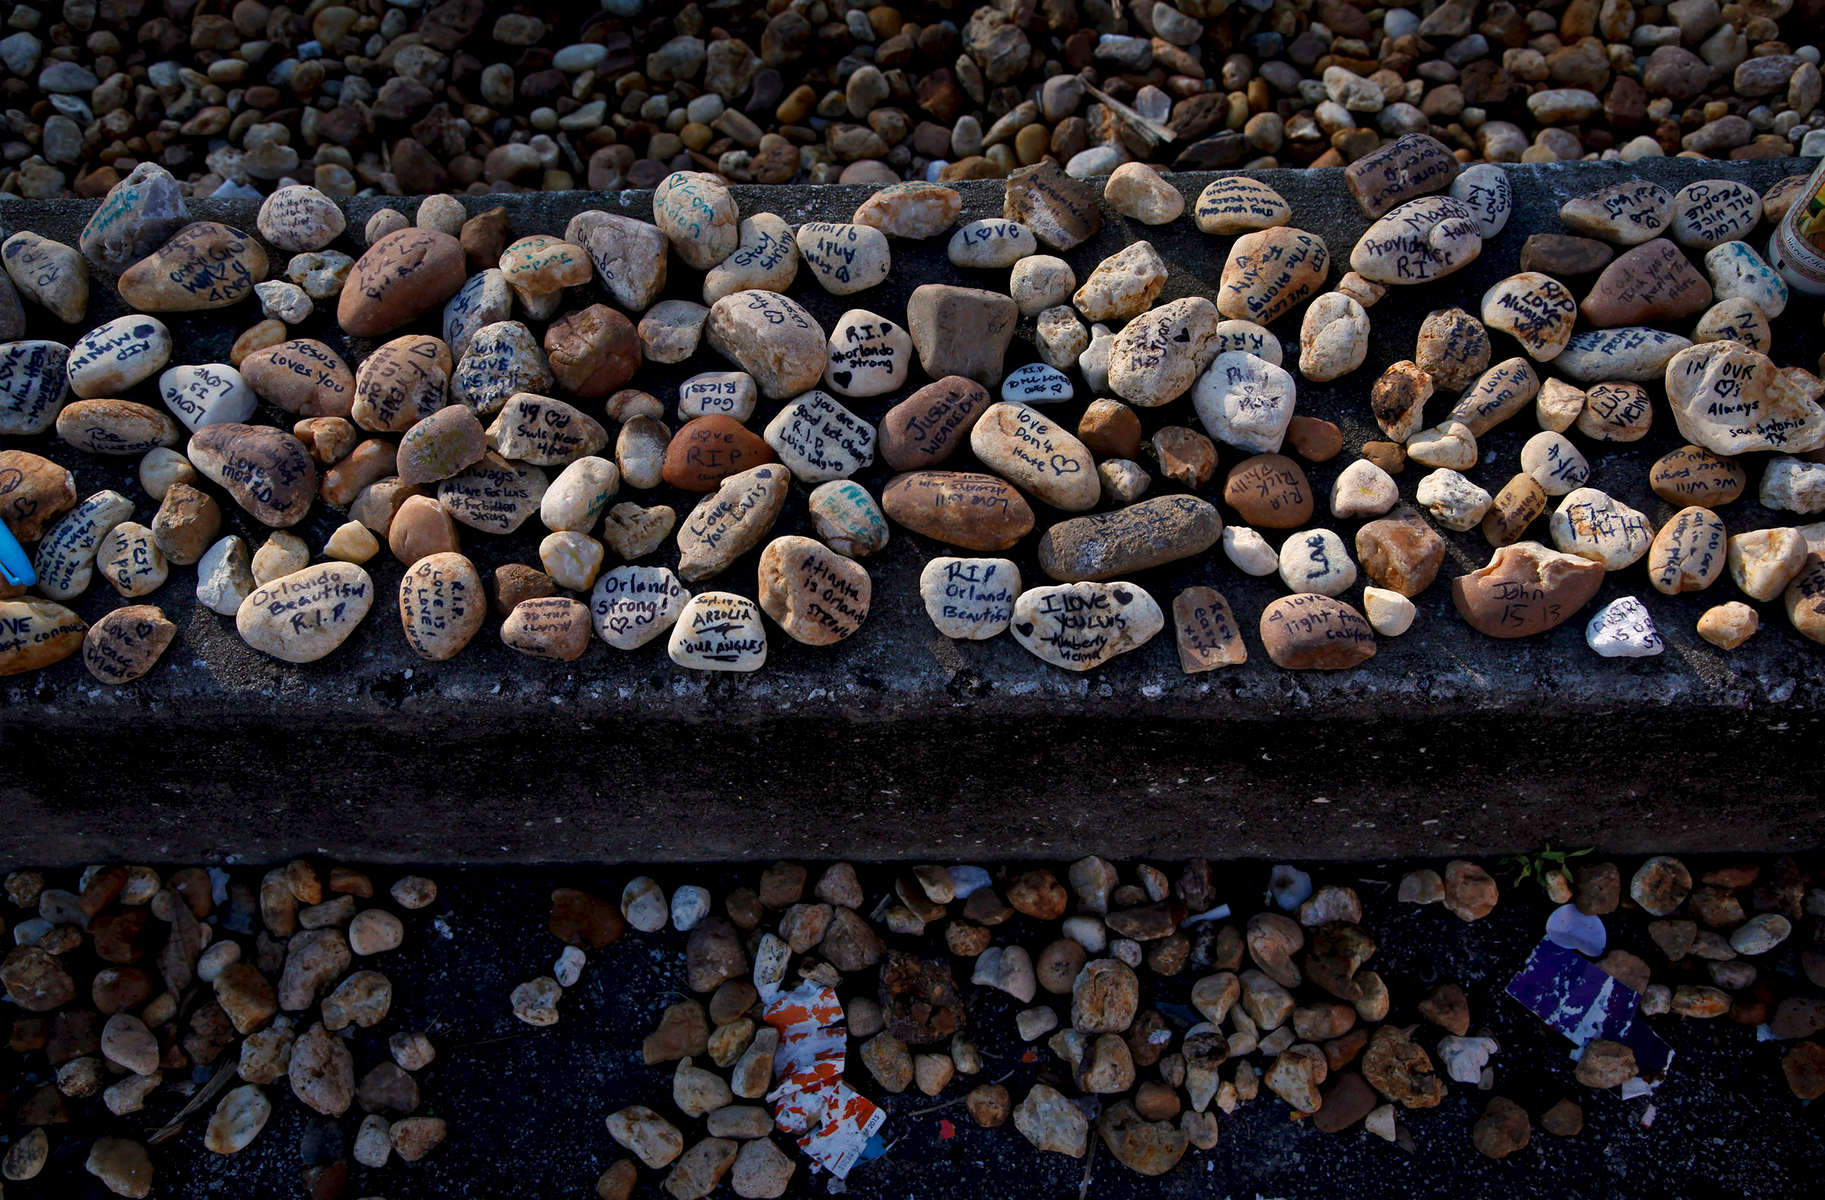 Landscaping pebbles outside the closed Pulse are turned into tiny memorials.